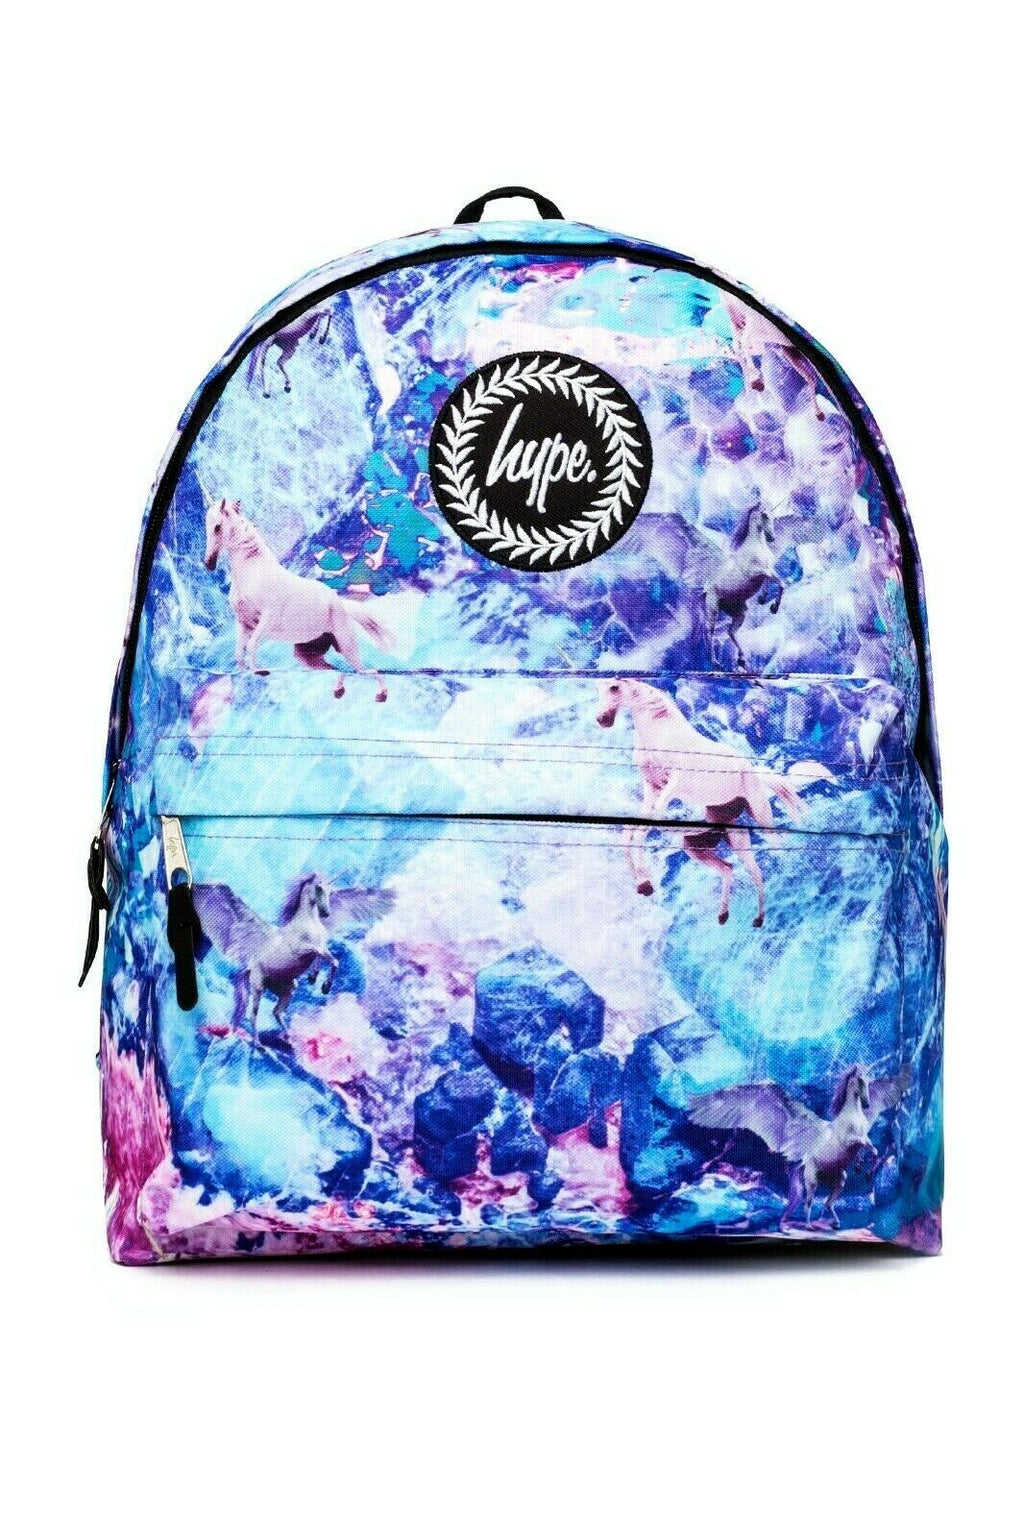 HYPE PERSIA BACKPACK RUCKSACK BAG - MULTI